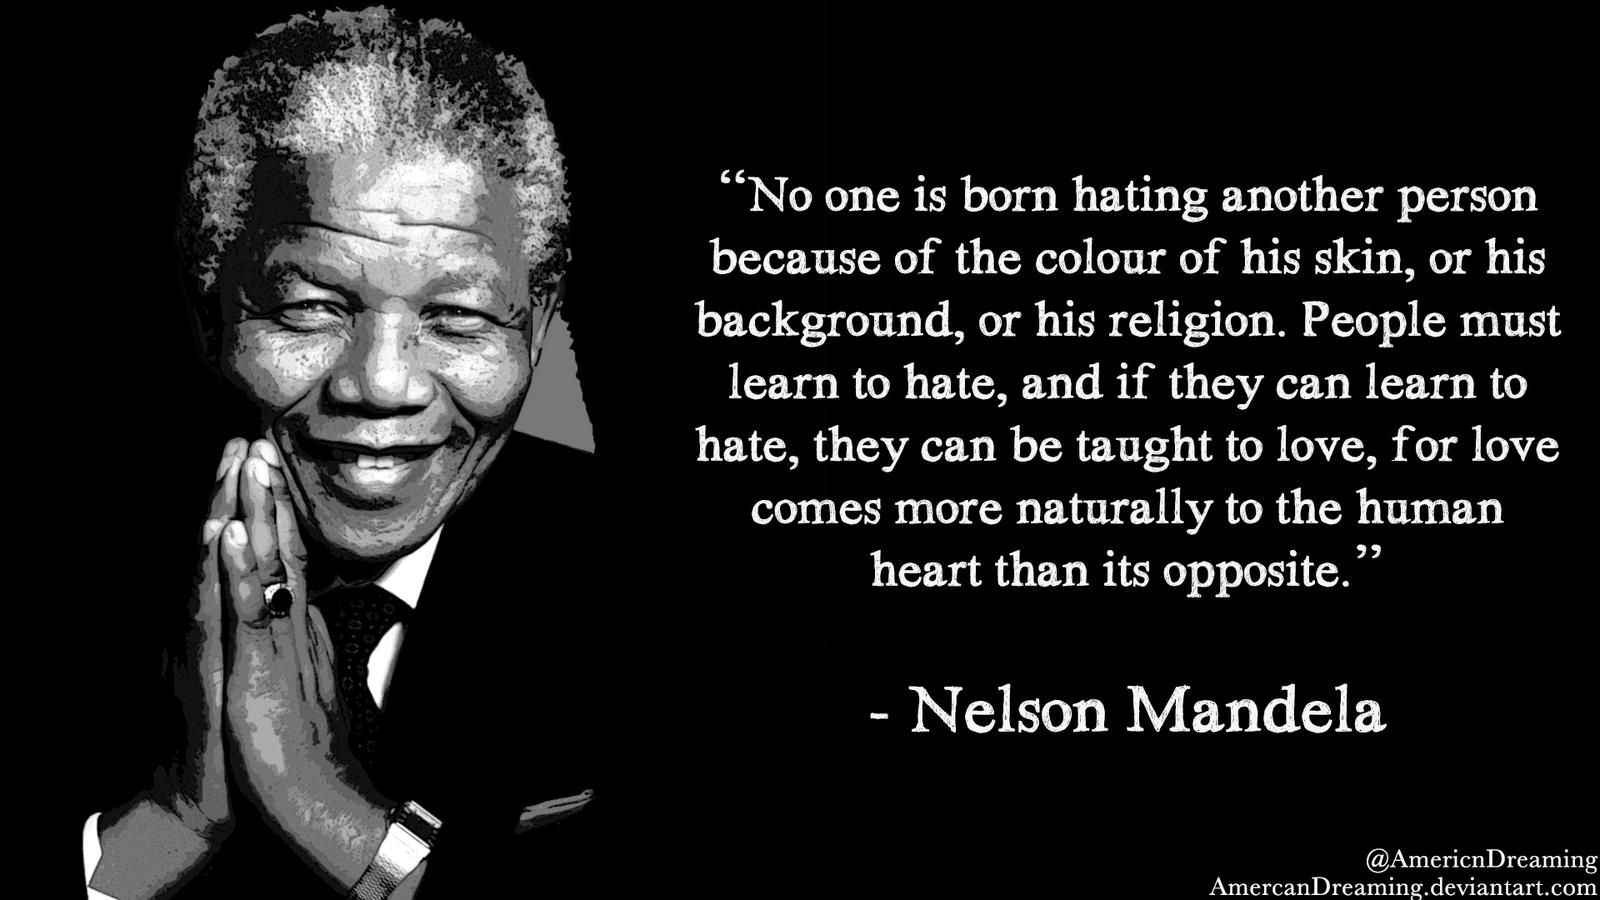 Mandela Quotes About Love The Paradox Of Toleranceamericandreaming On Deviantart